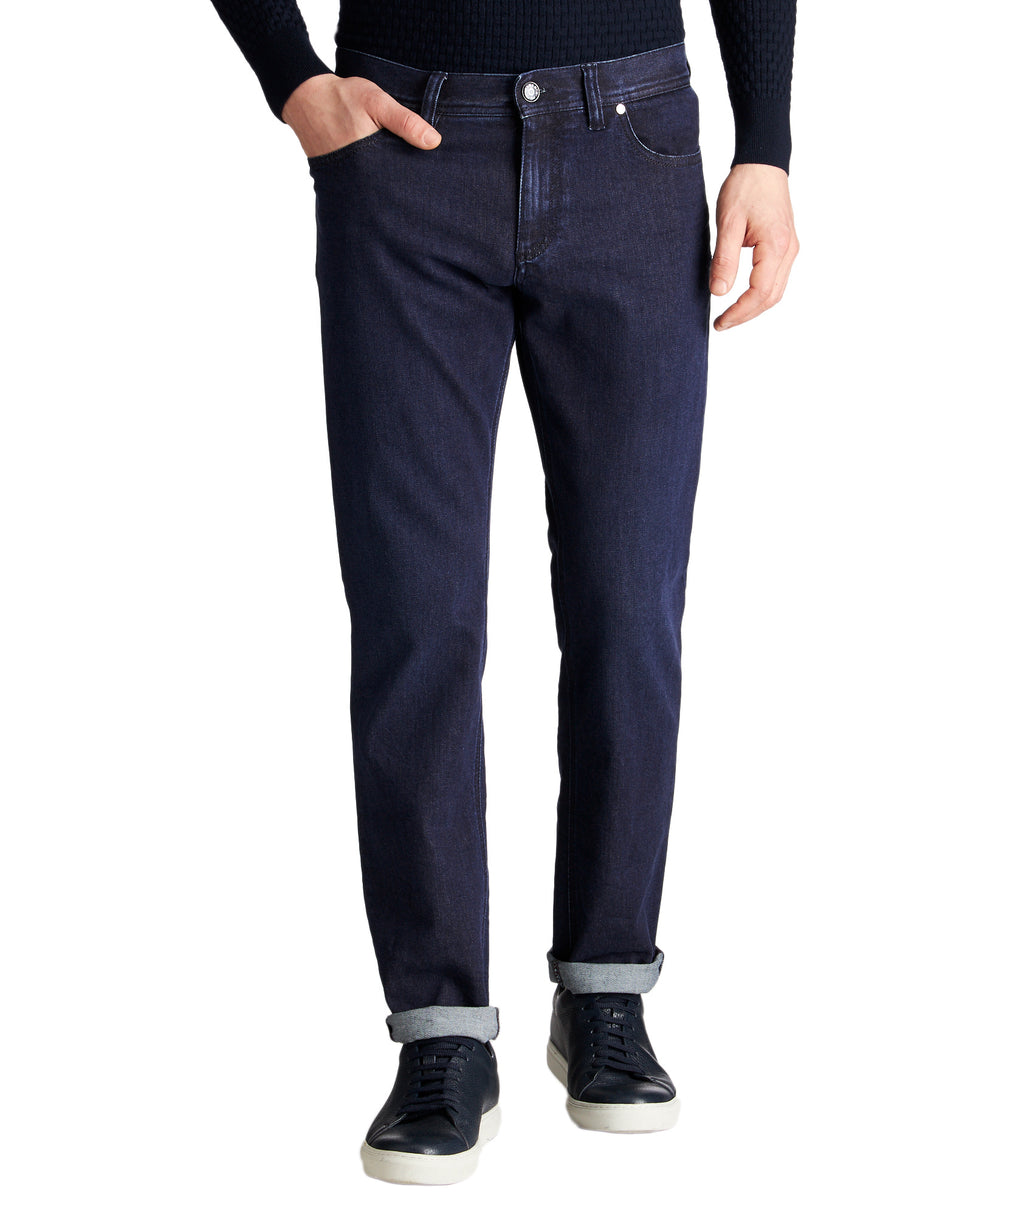 Alberto Jeans - Pipe Slim Fit Indigo